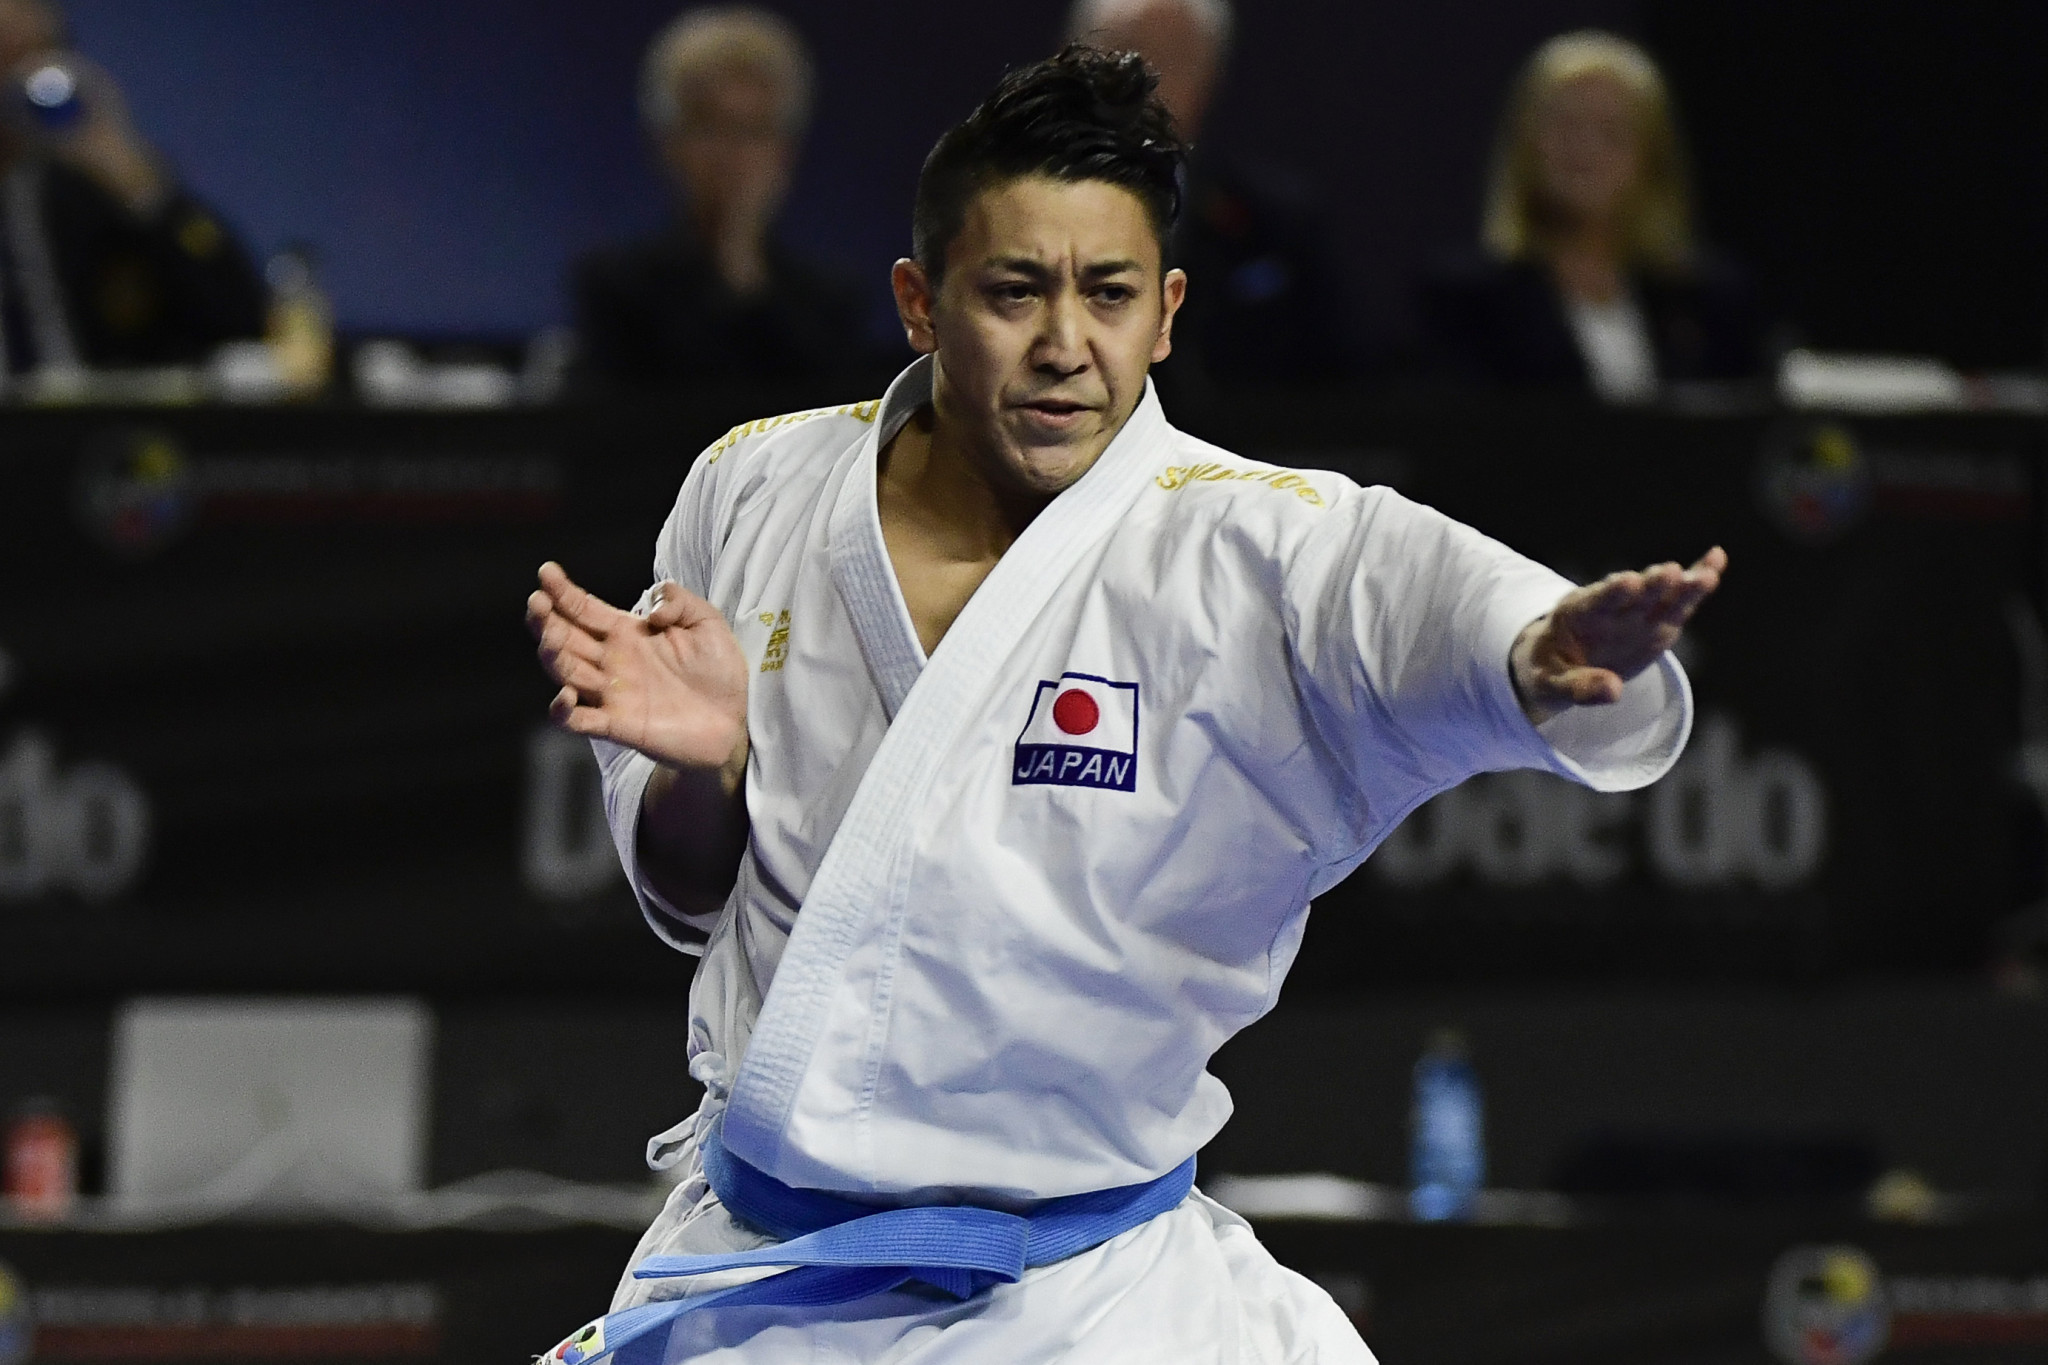 Japan's Ryo Kiyuna has qualified for the 2019 ANOC World Beach Games in San Diego after winning November's Karate World Championships ©Getty Images